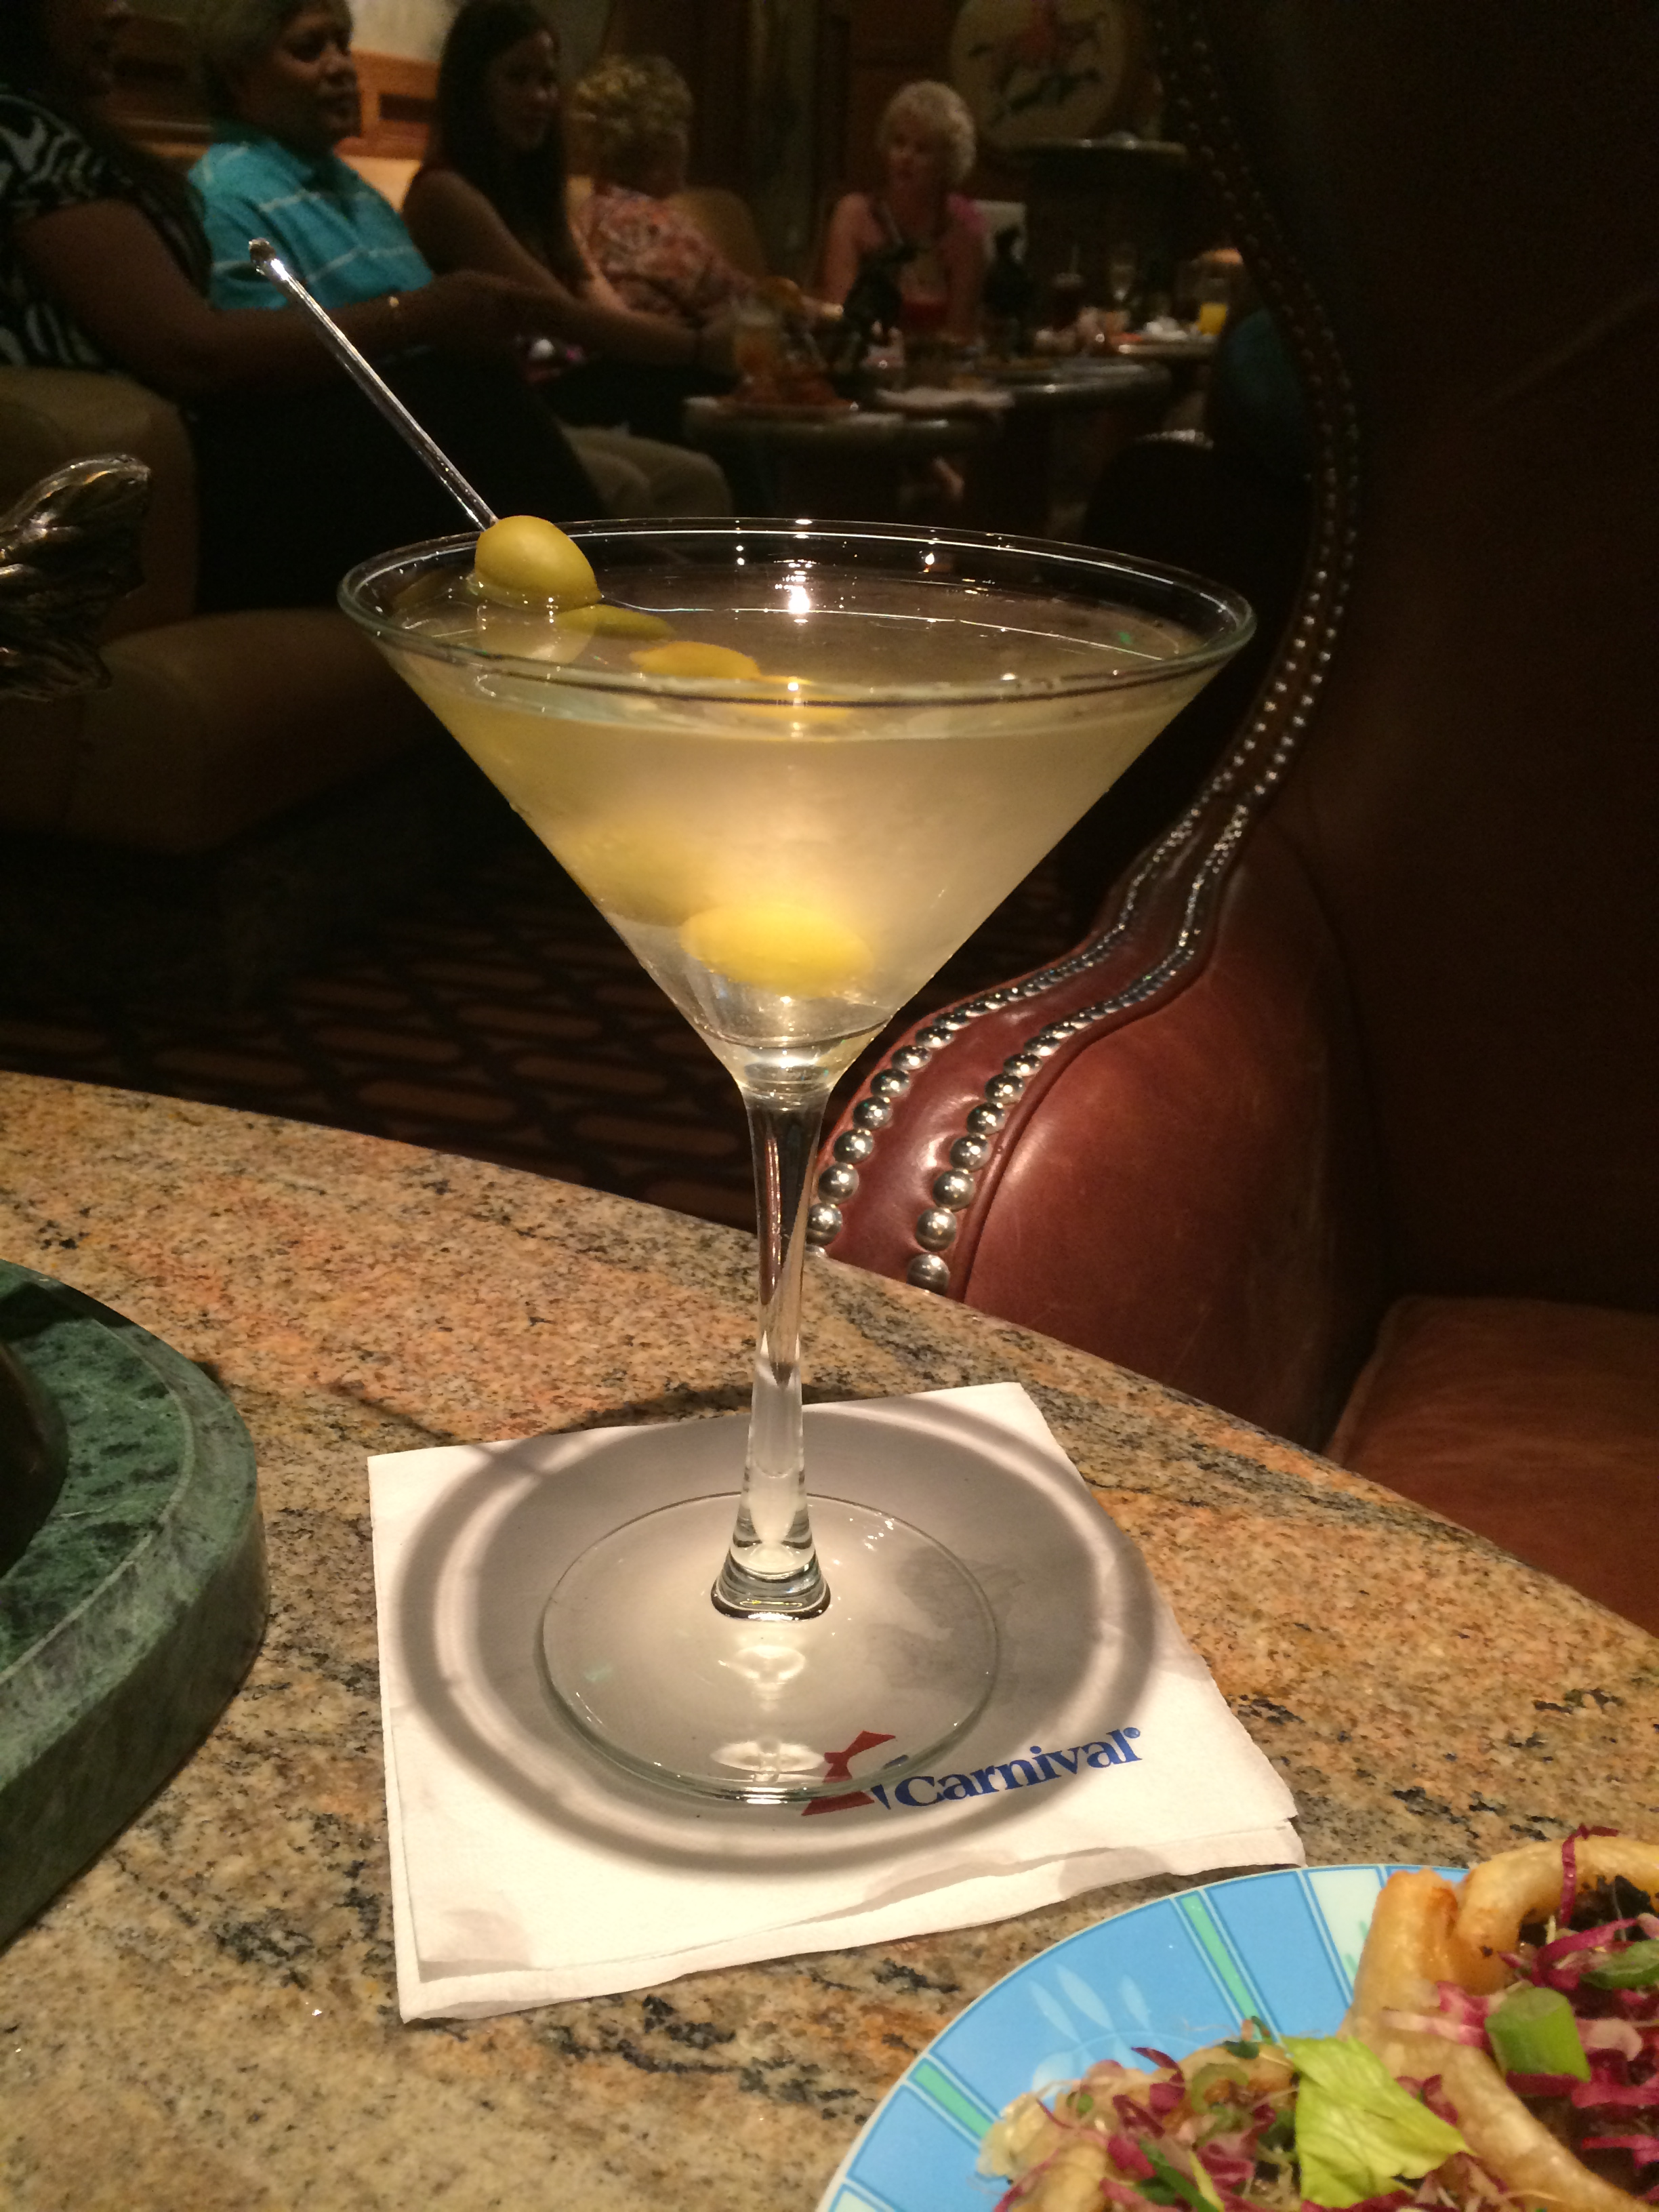 The Top 11 Things I Ate And Drank On The Carnival Dream